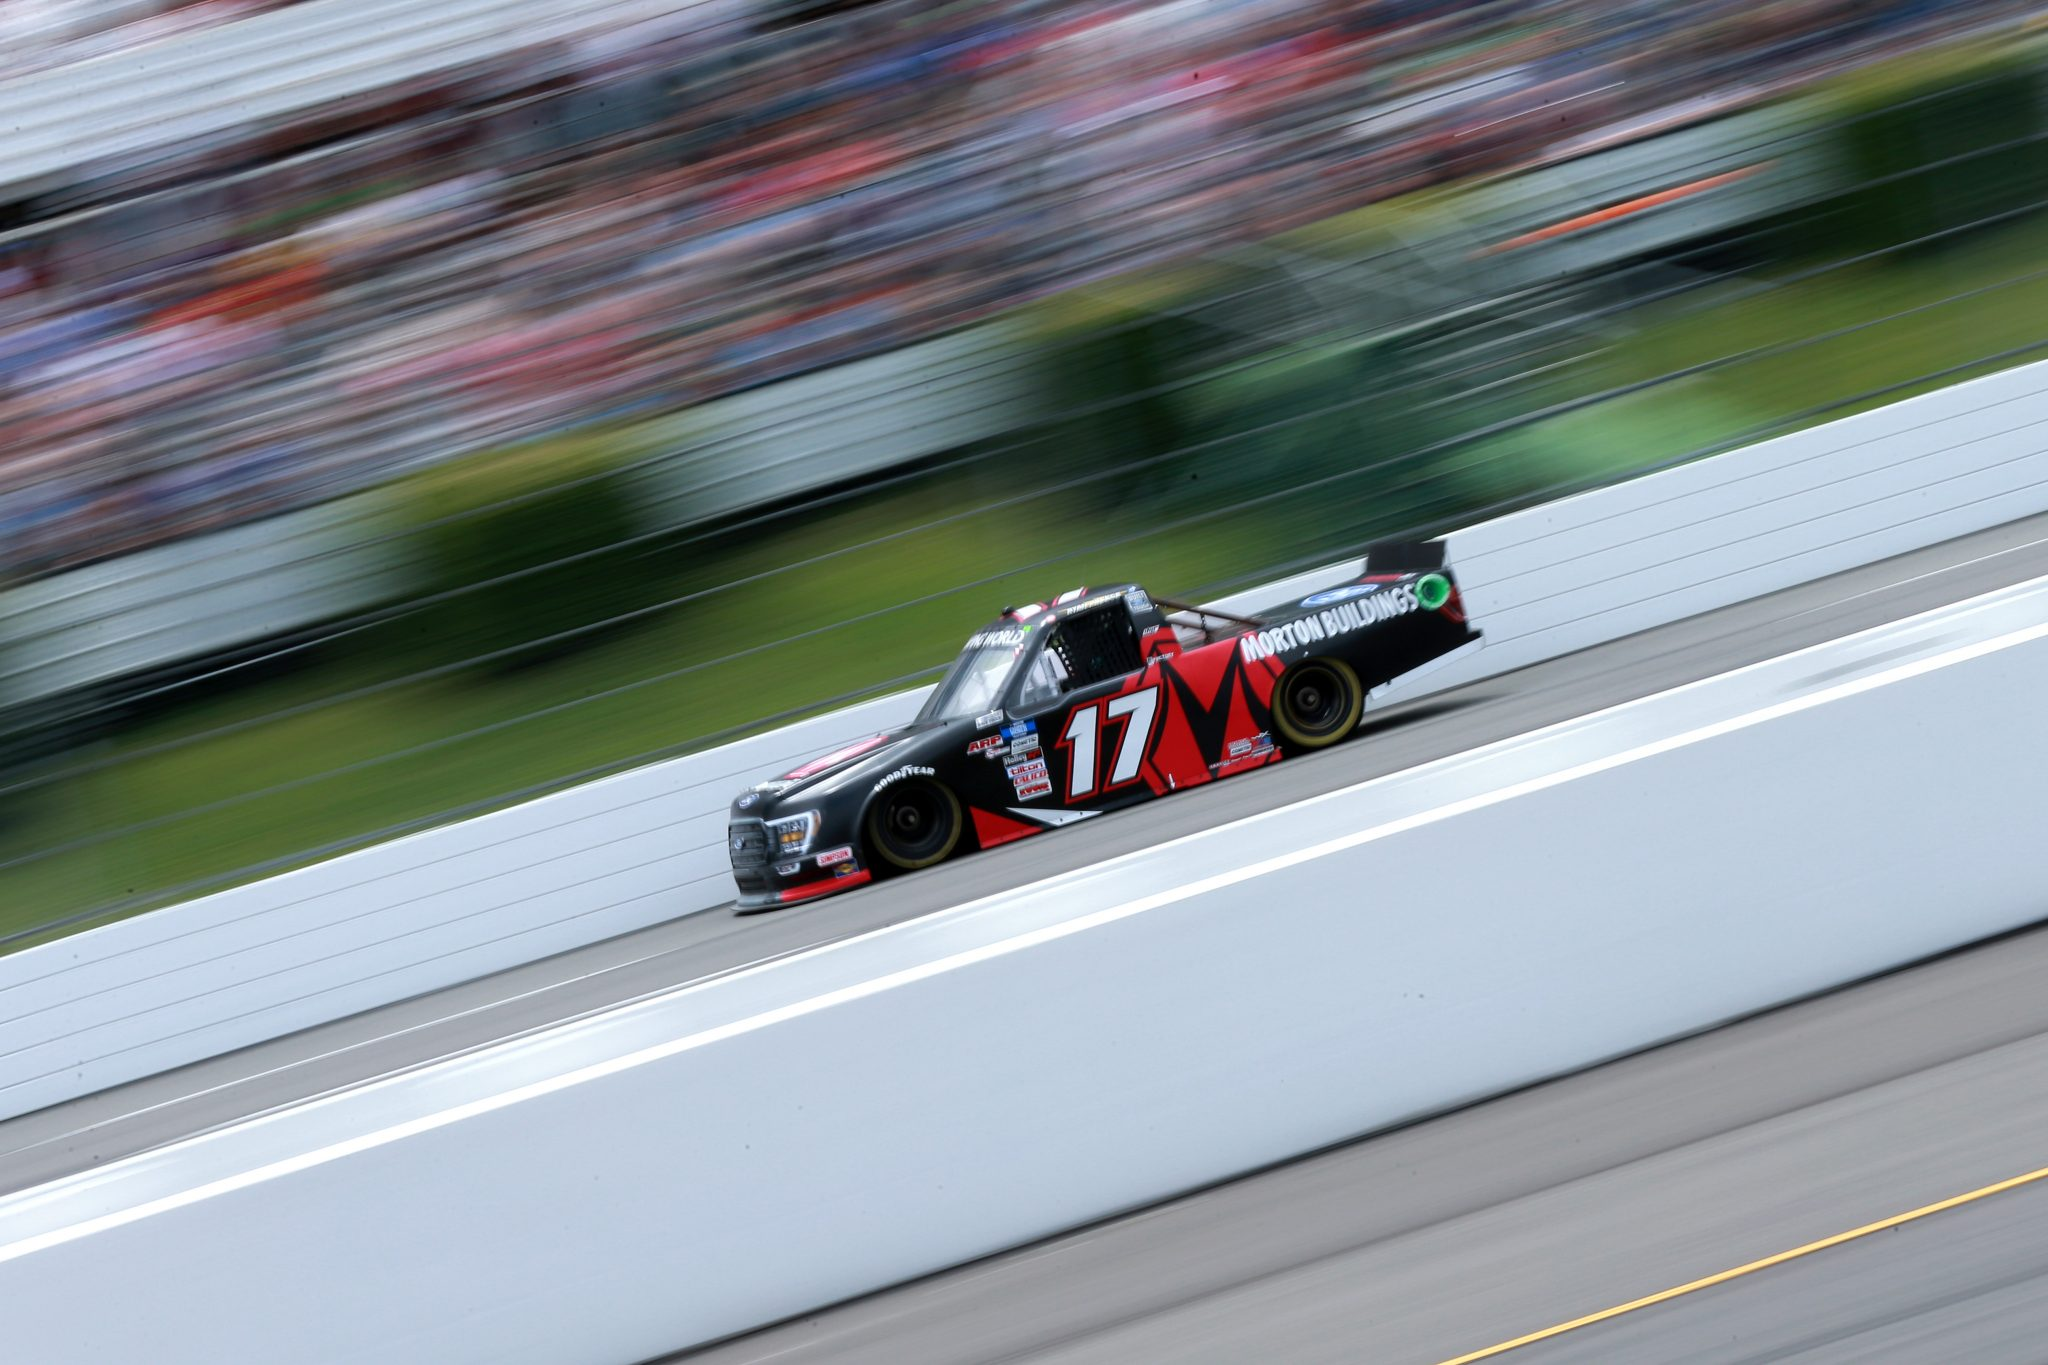 LONG POND, PENNSYLVANIA - JUNE 26: Ryan Preece, driver of the #17 Morton Buildings Ford, drives during the NASCAR Camping World Truck Series CRC Brakleen 150 at Pocono Raceway on June 26, 2021 in Long Pond, Pennsylvania. (Photo by Sean Gardner/Getty Images) | Getty Images